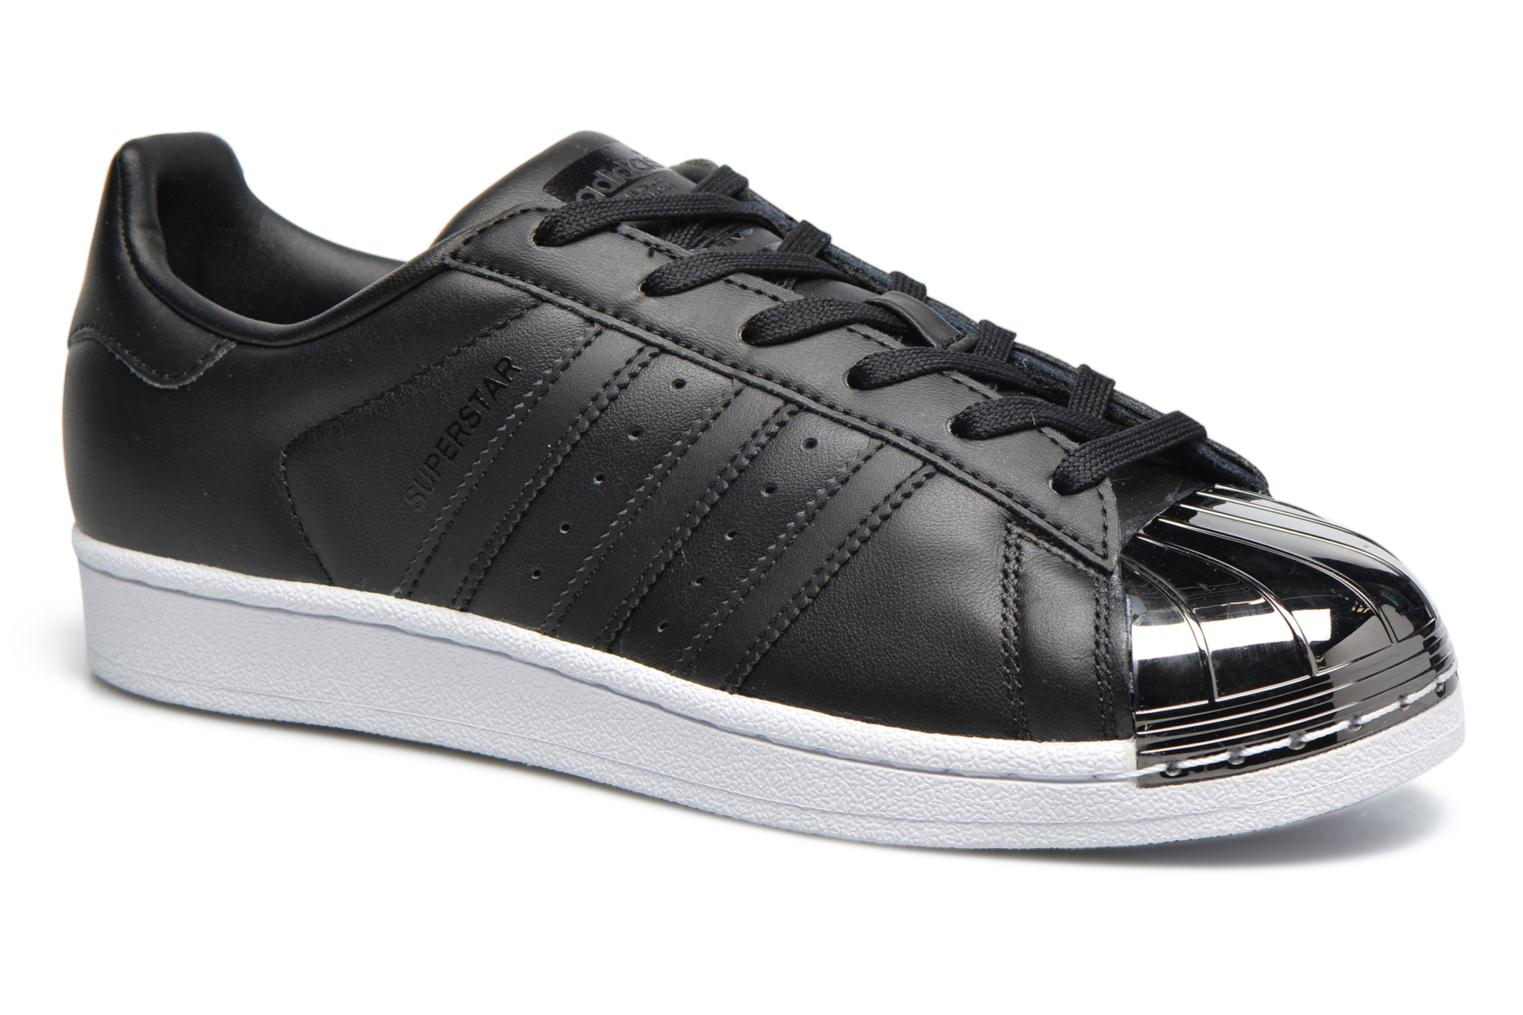 adidas Originals Baskets Superstar Metal Toe Femme Noir tehNG040